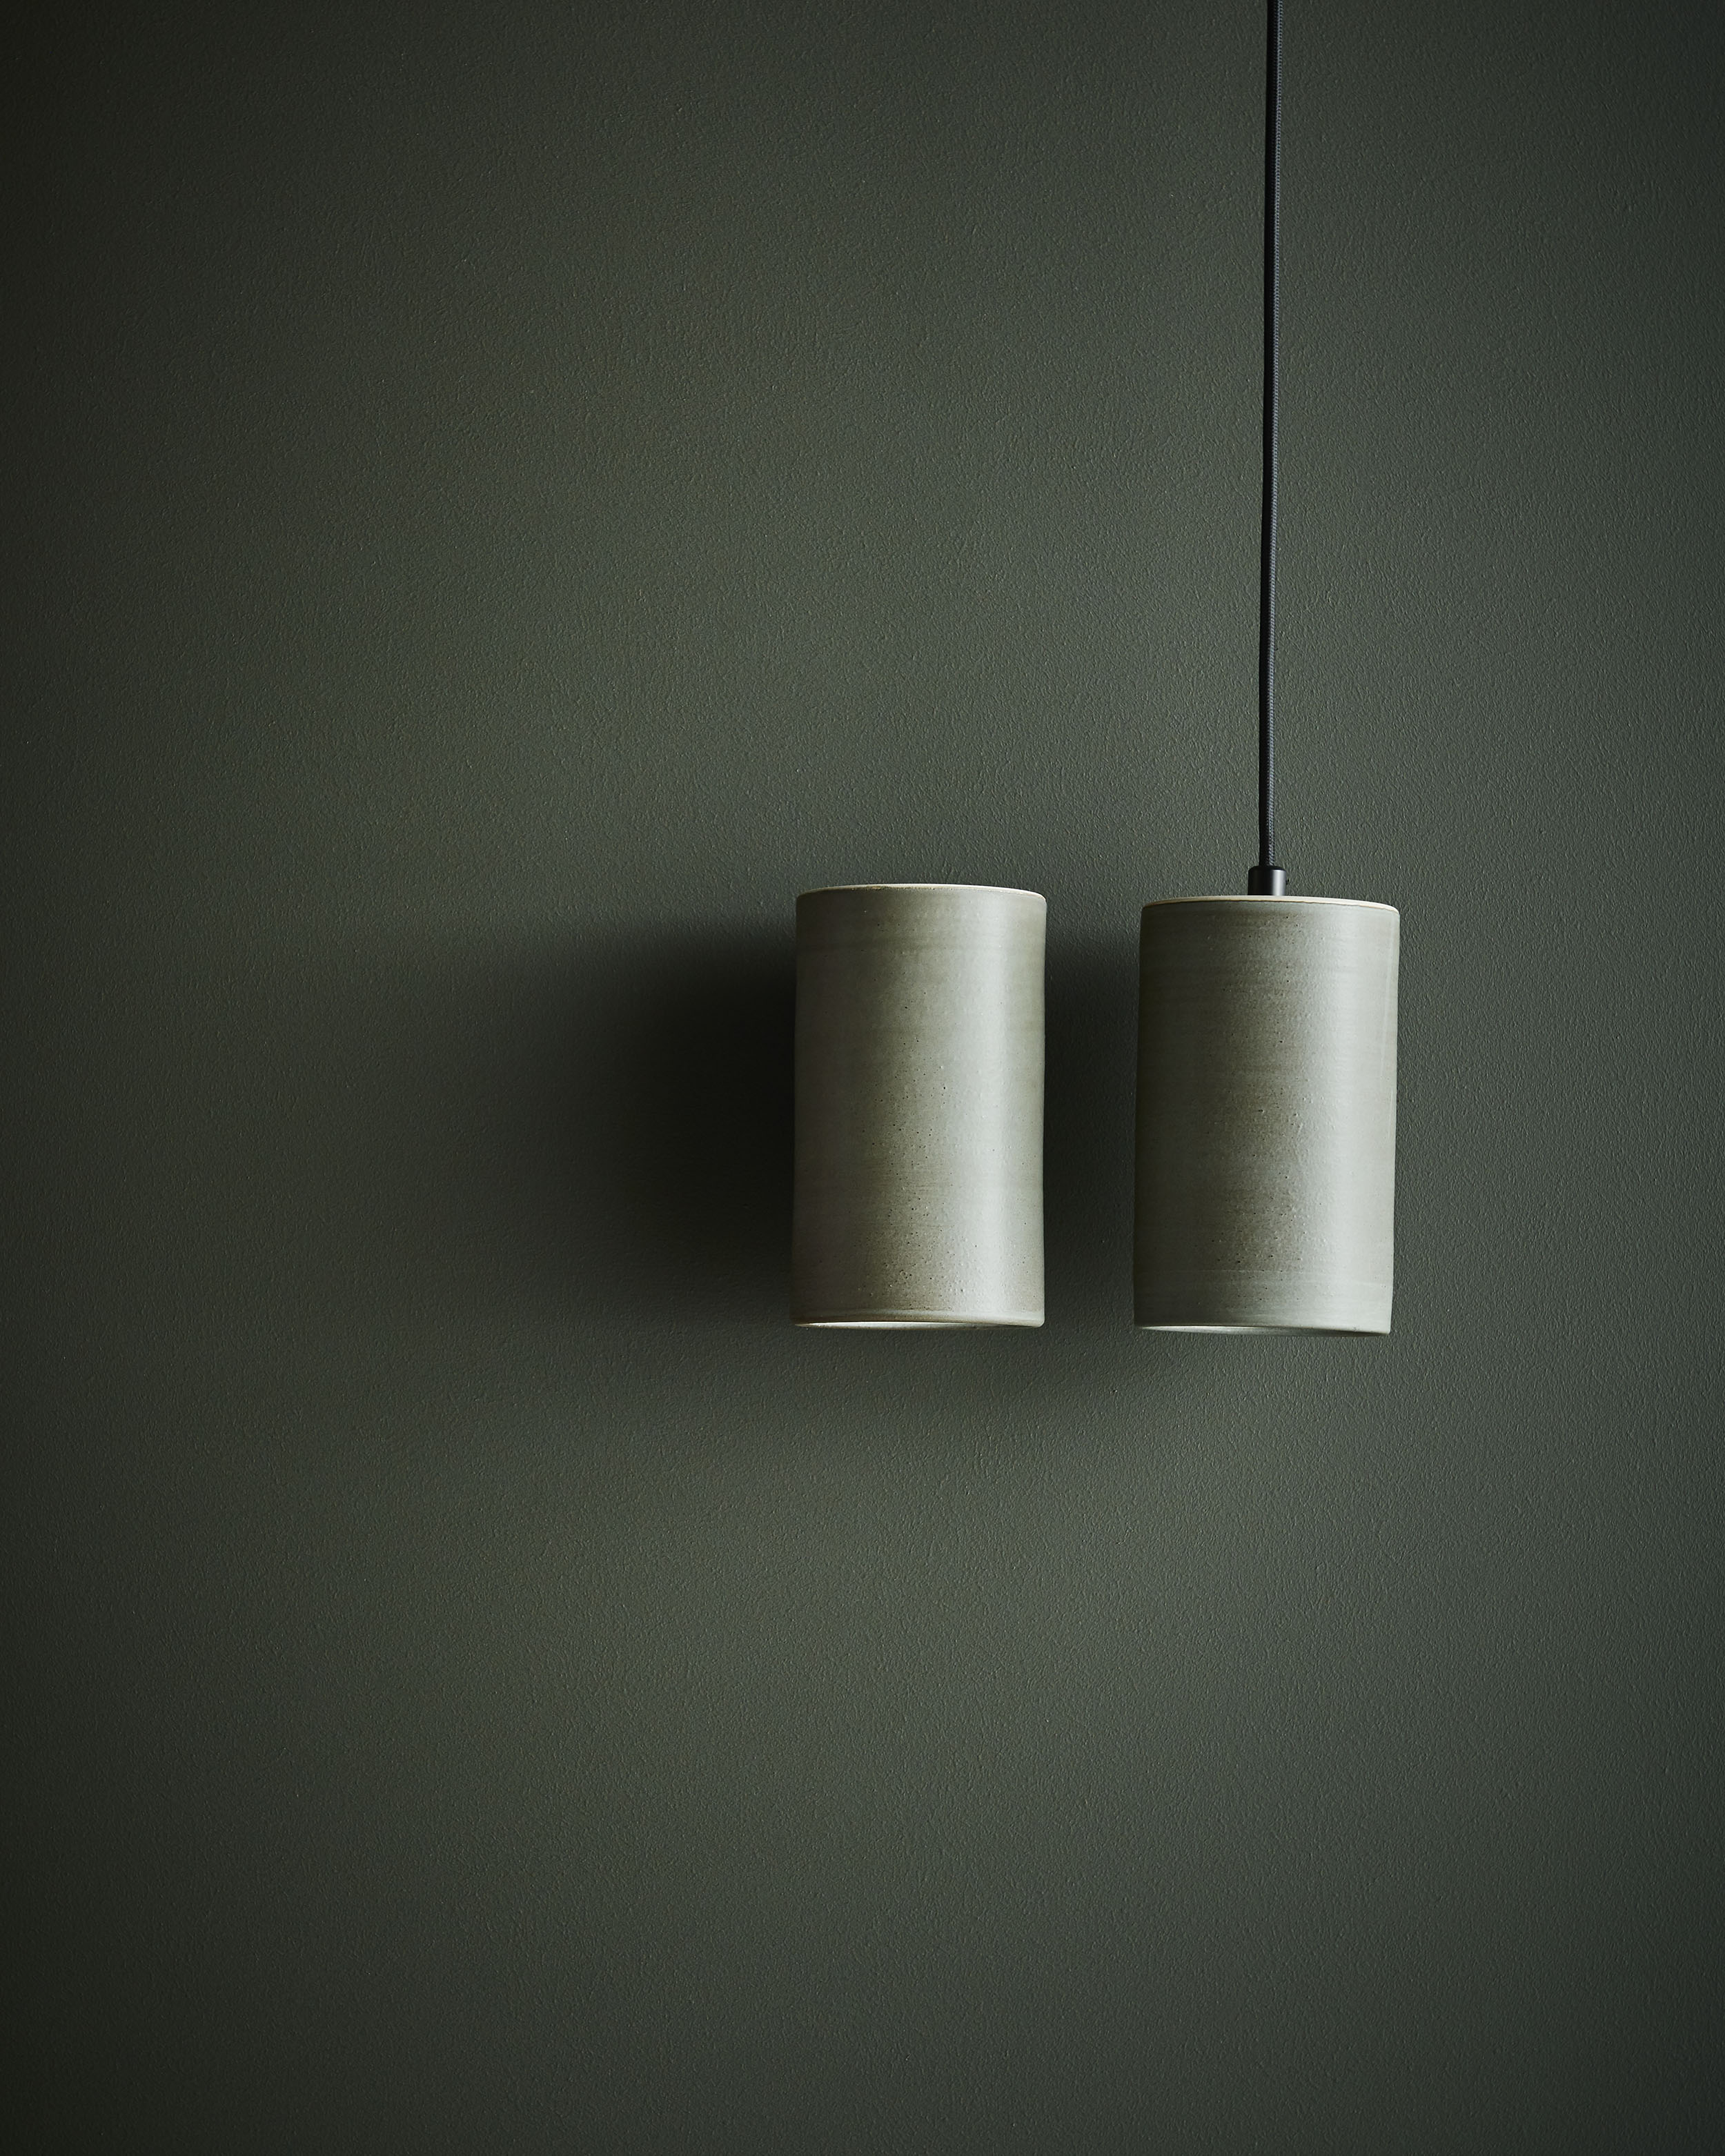 Earth Wall LIght and Pendant, regular, in Olive Green Glaze_2500px.jpg